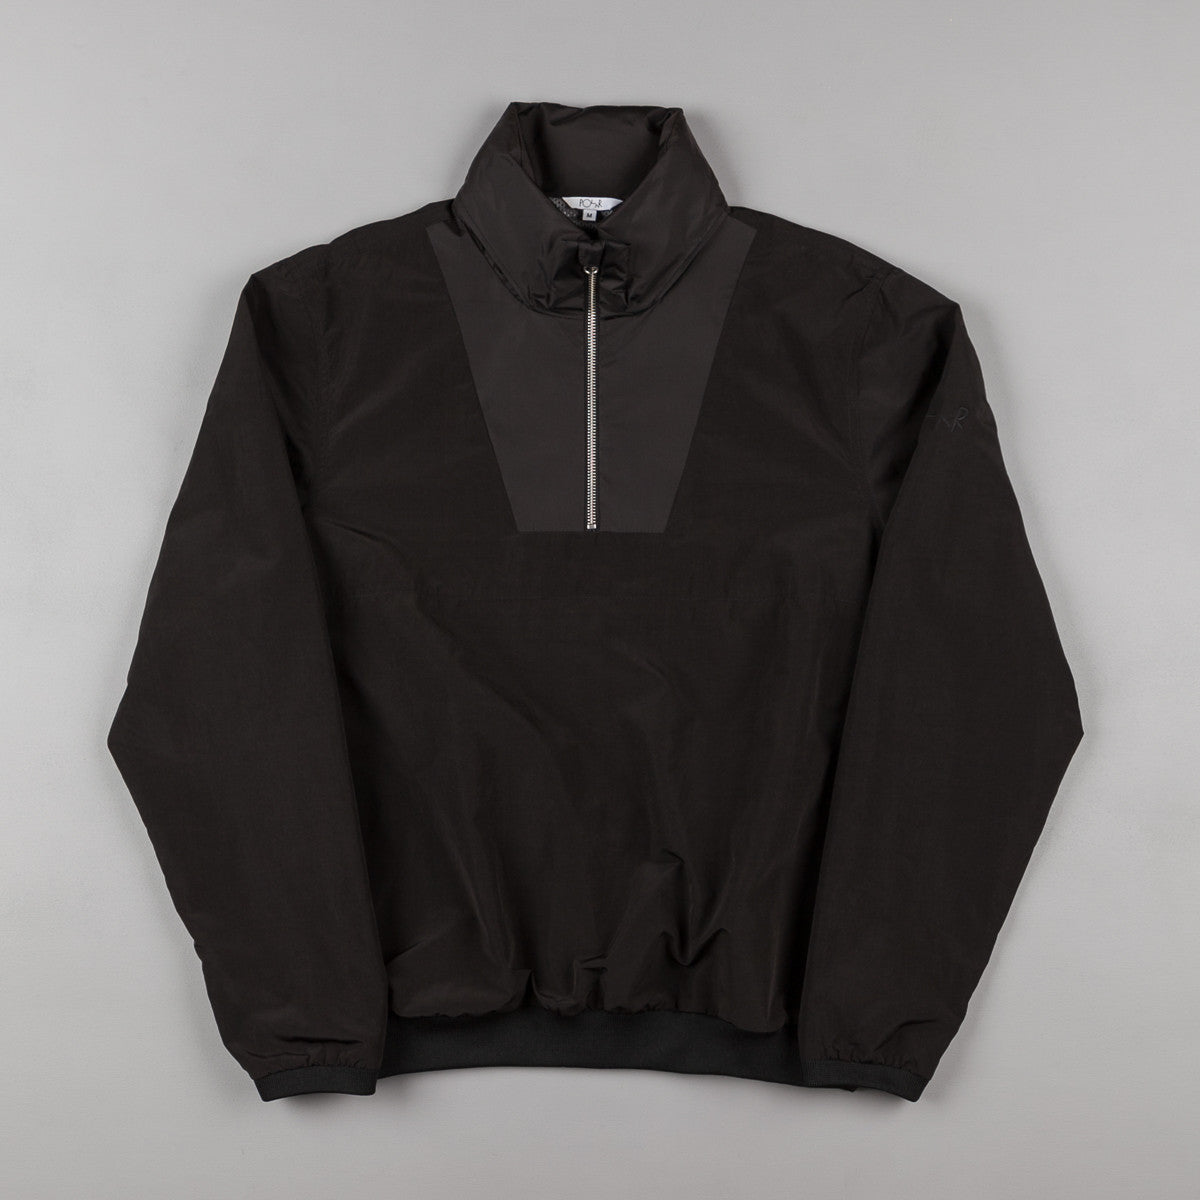 Polar Golf Club Pullover 2.0 Jacket - Black